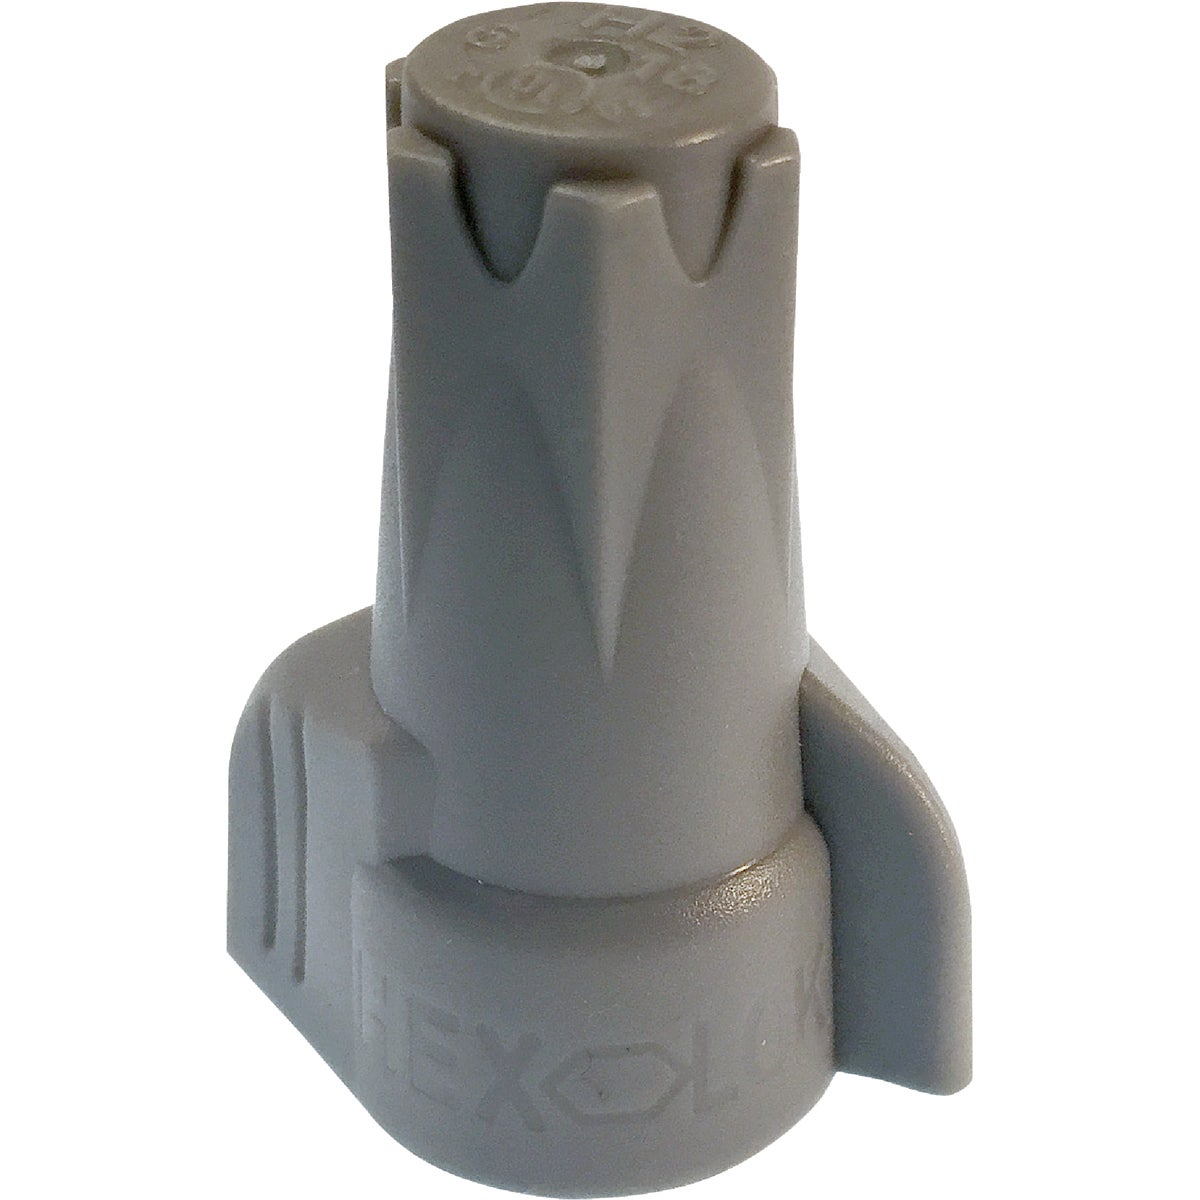 18-6AWG HEXLCK CONNECTOR - 10-2H2 by G B Electrical Inc